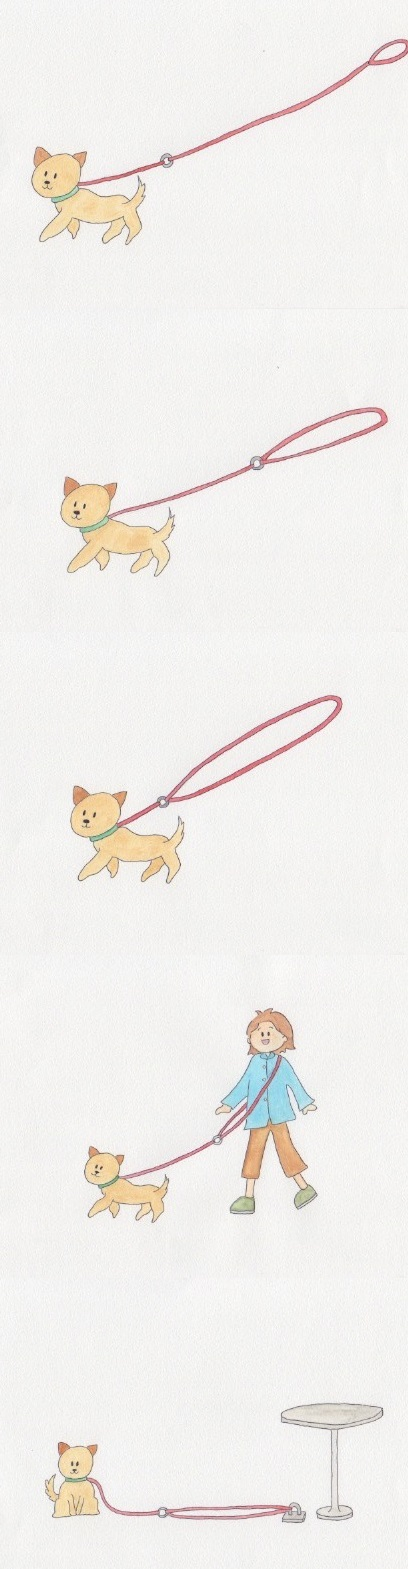 Dog index leash